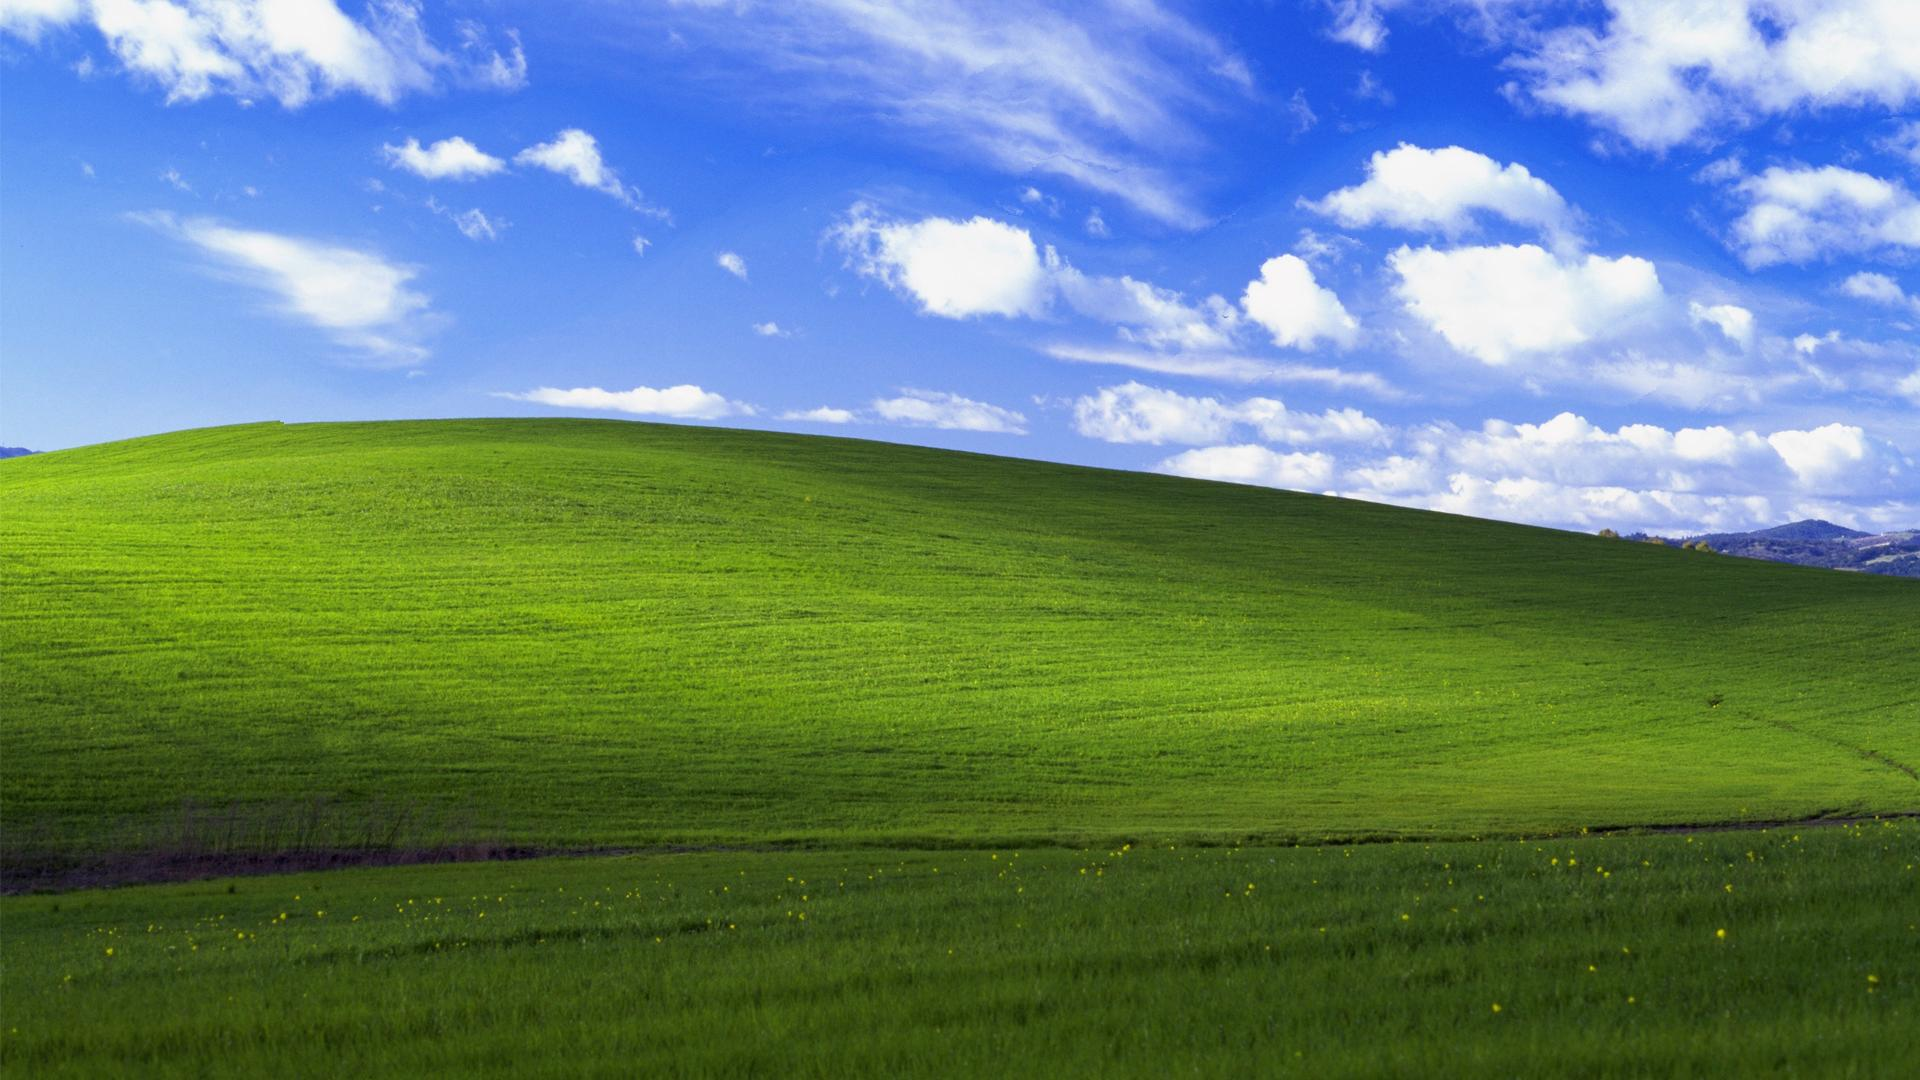 Windows XP Wallpapers   Top Windows XP Backgrounds 1920x1080